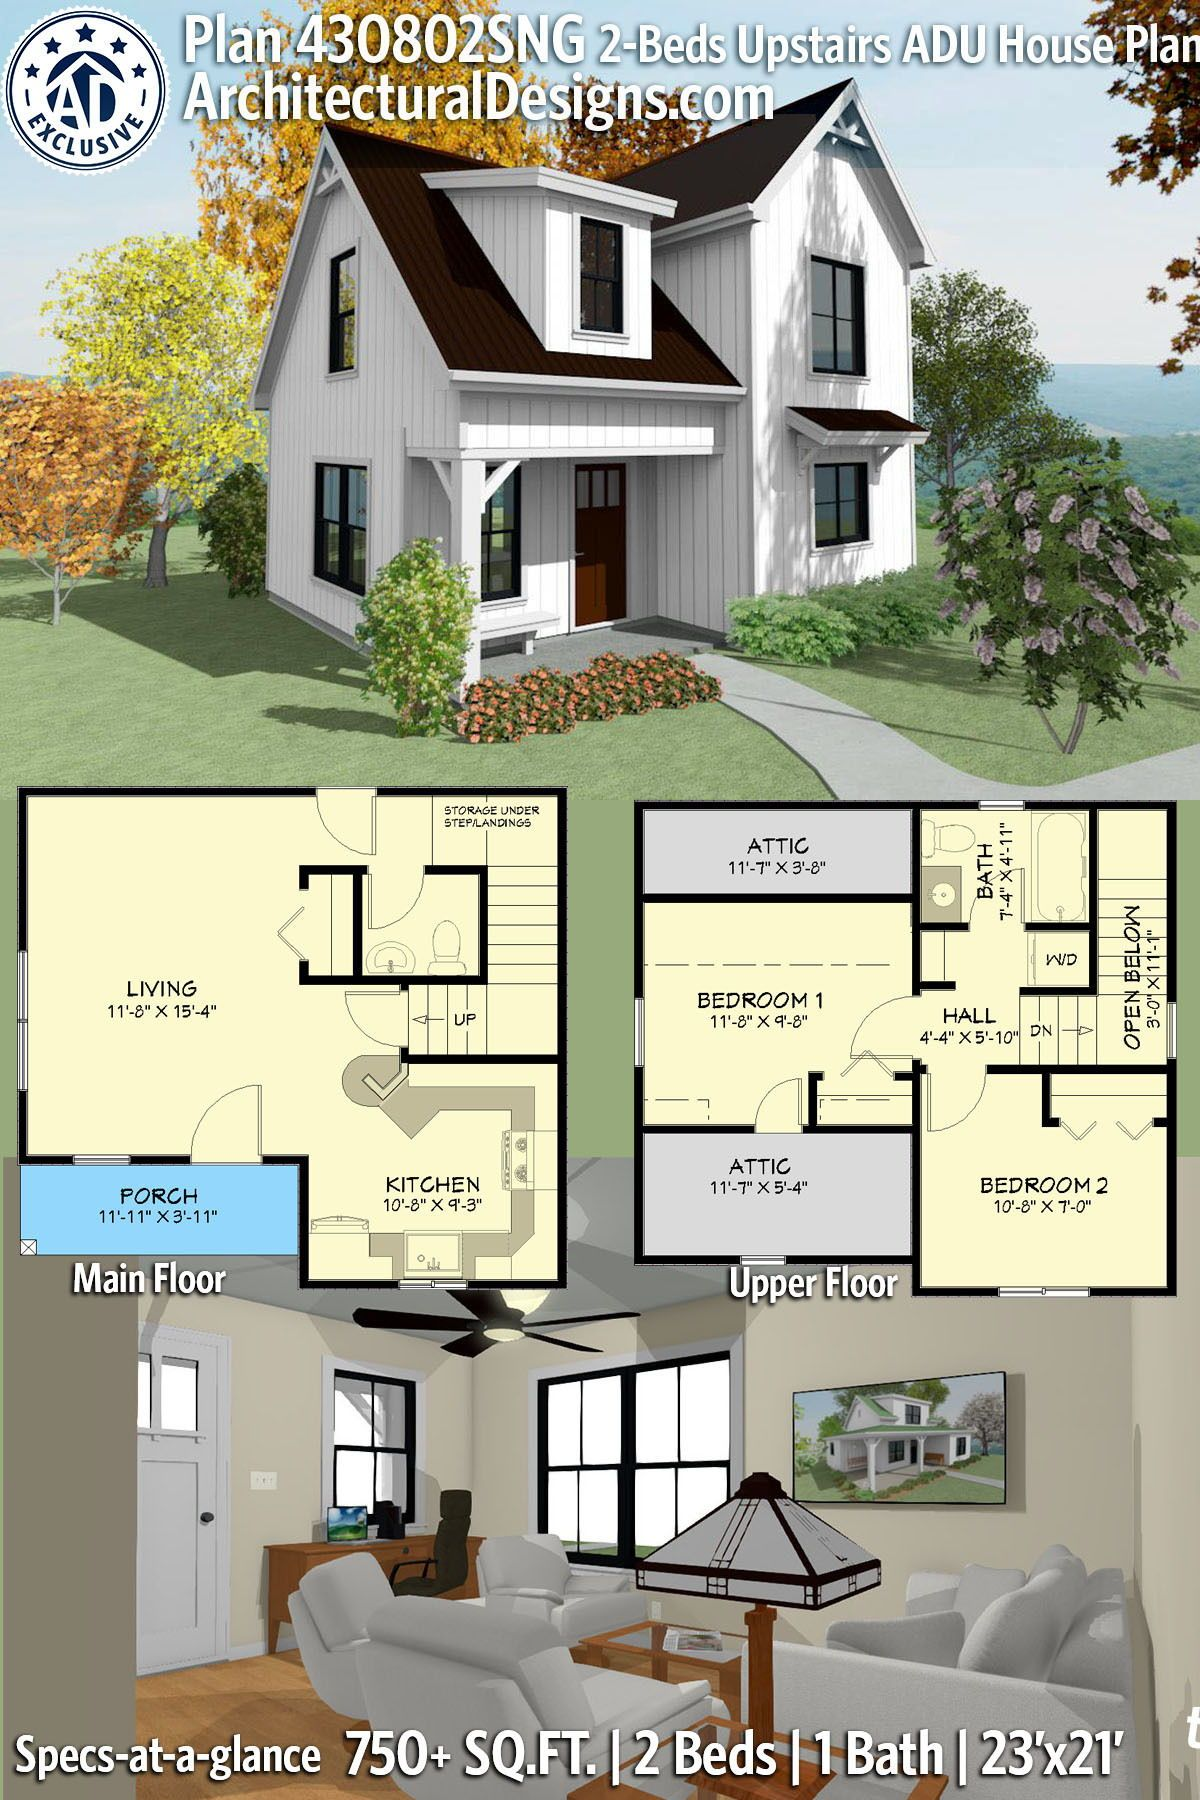 Plan 430802sng Exclusive Two Story House Plan With Upstairs Bedrooms In 2020 Guest House Plans Sims House Plans House Plans Farmhouse